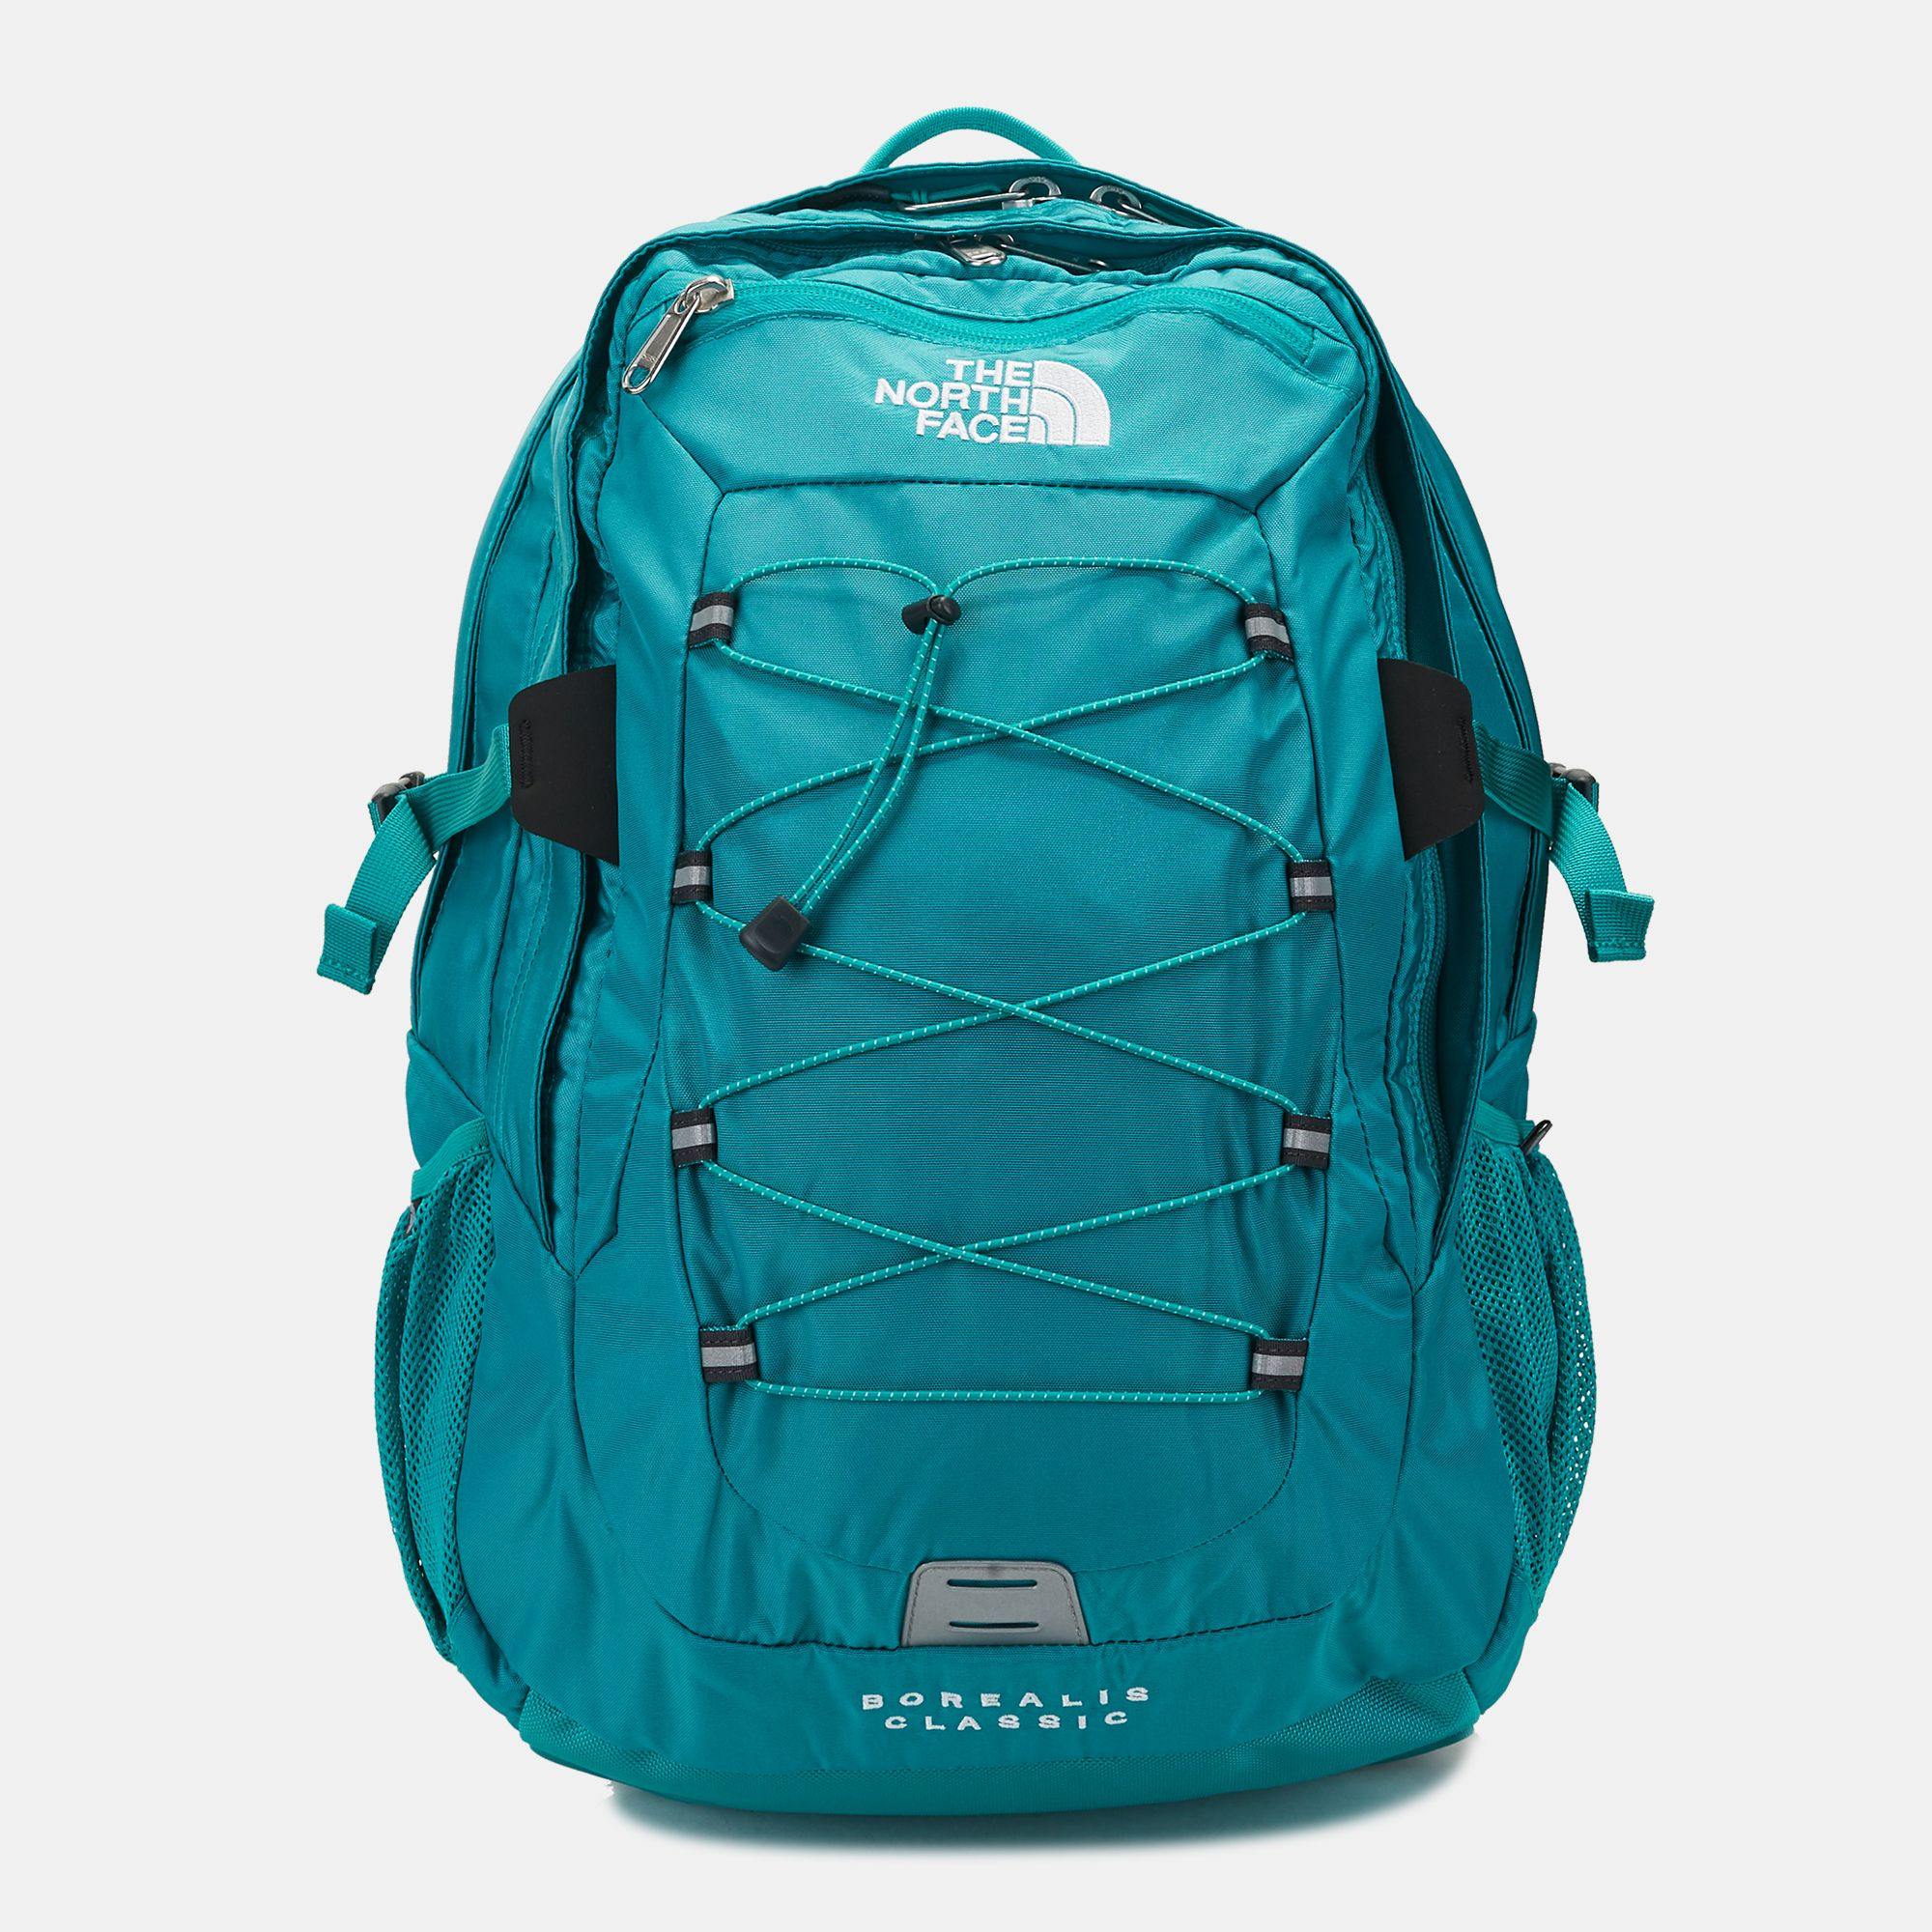 d2b08b755011 North Face Backpack Aqua- Fenix Toulouse Handball